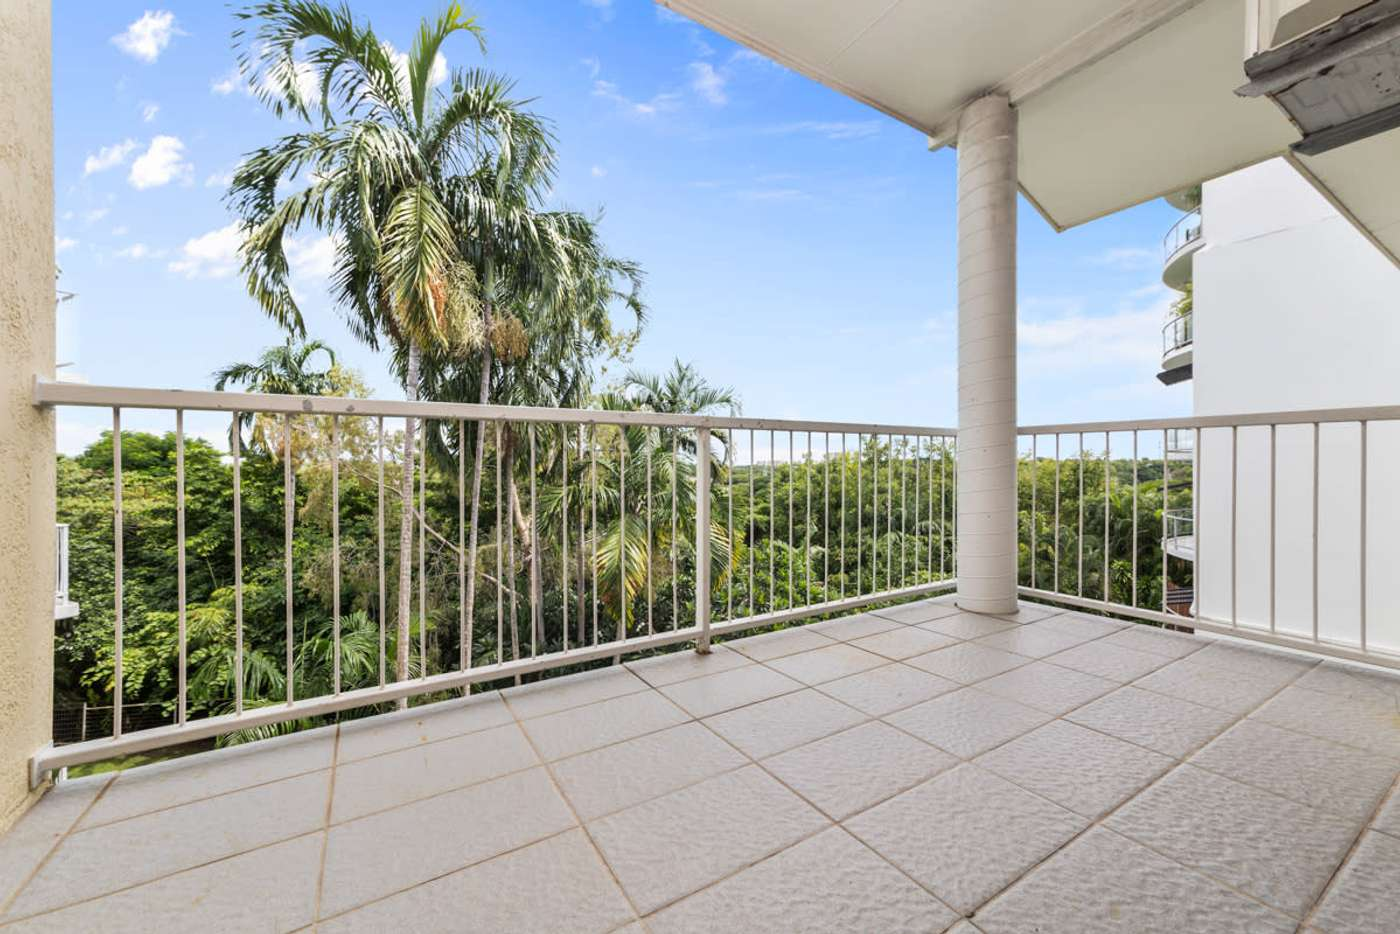 Main view of Homely unit listing, 6/1 Warrego Court, Larrakeyah NT 820